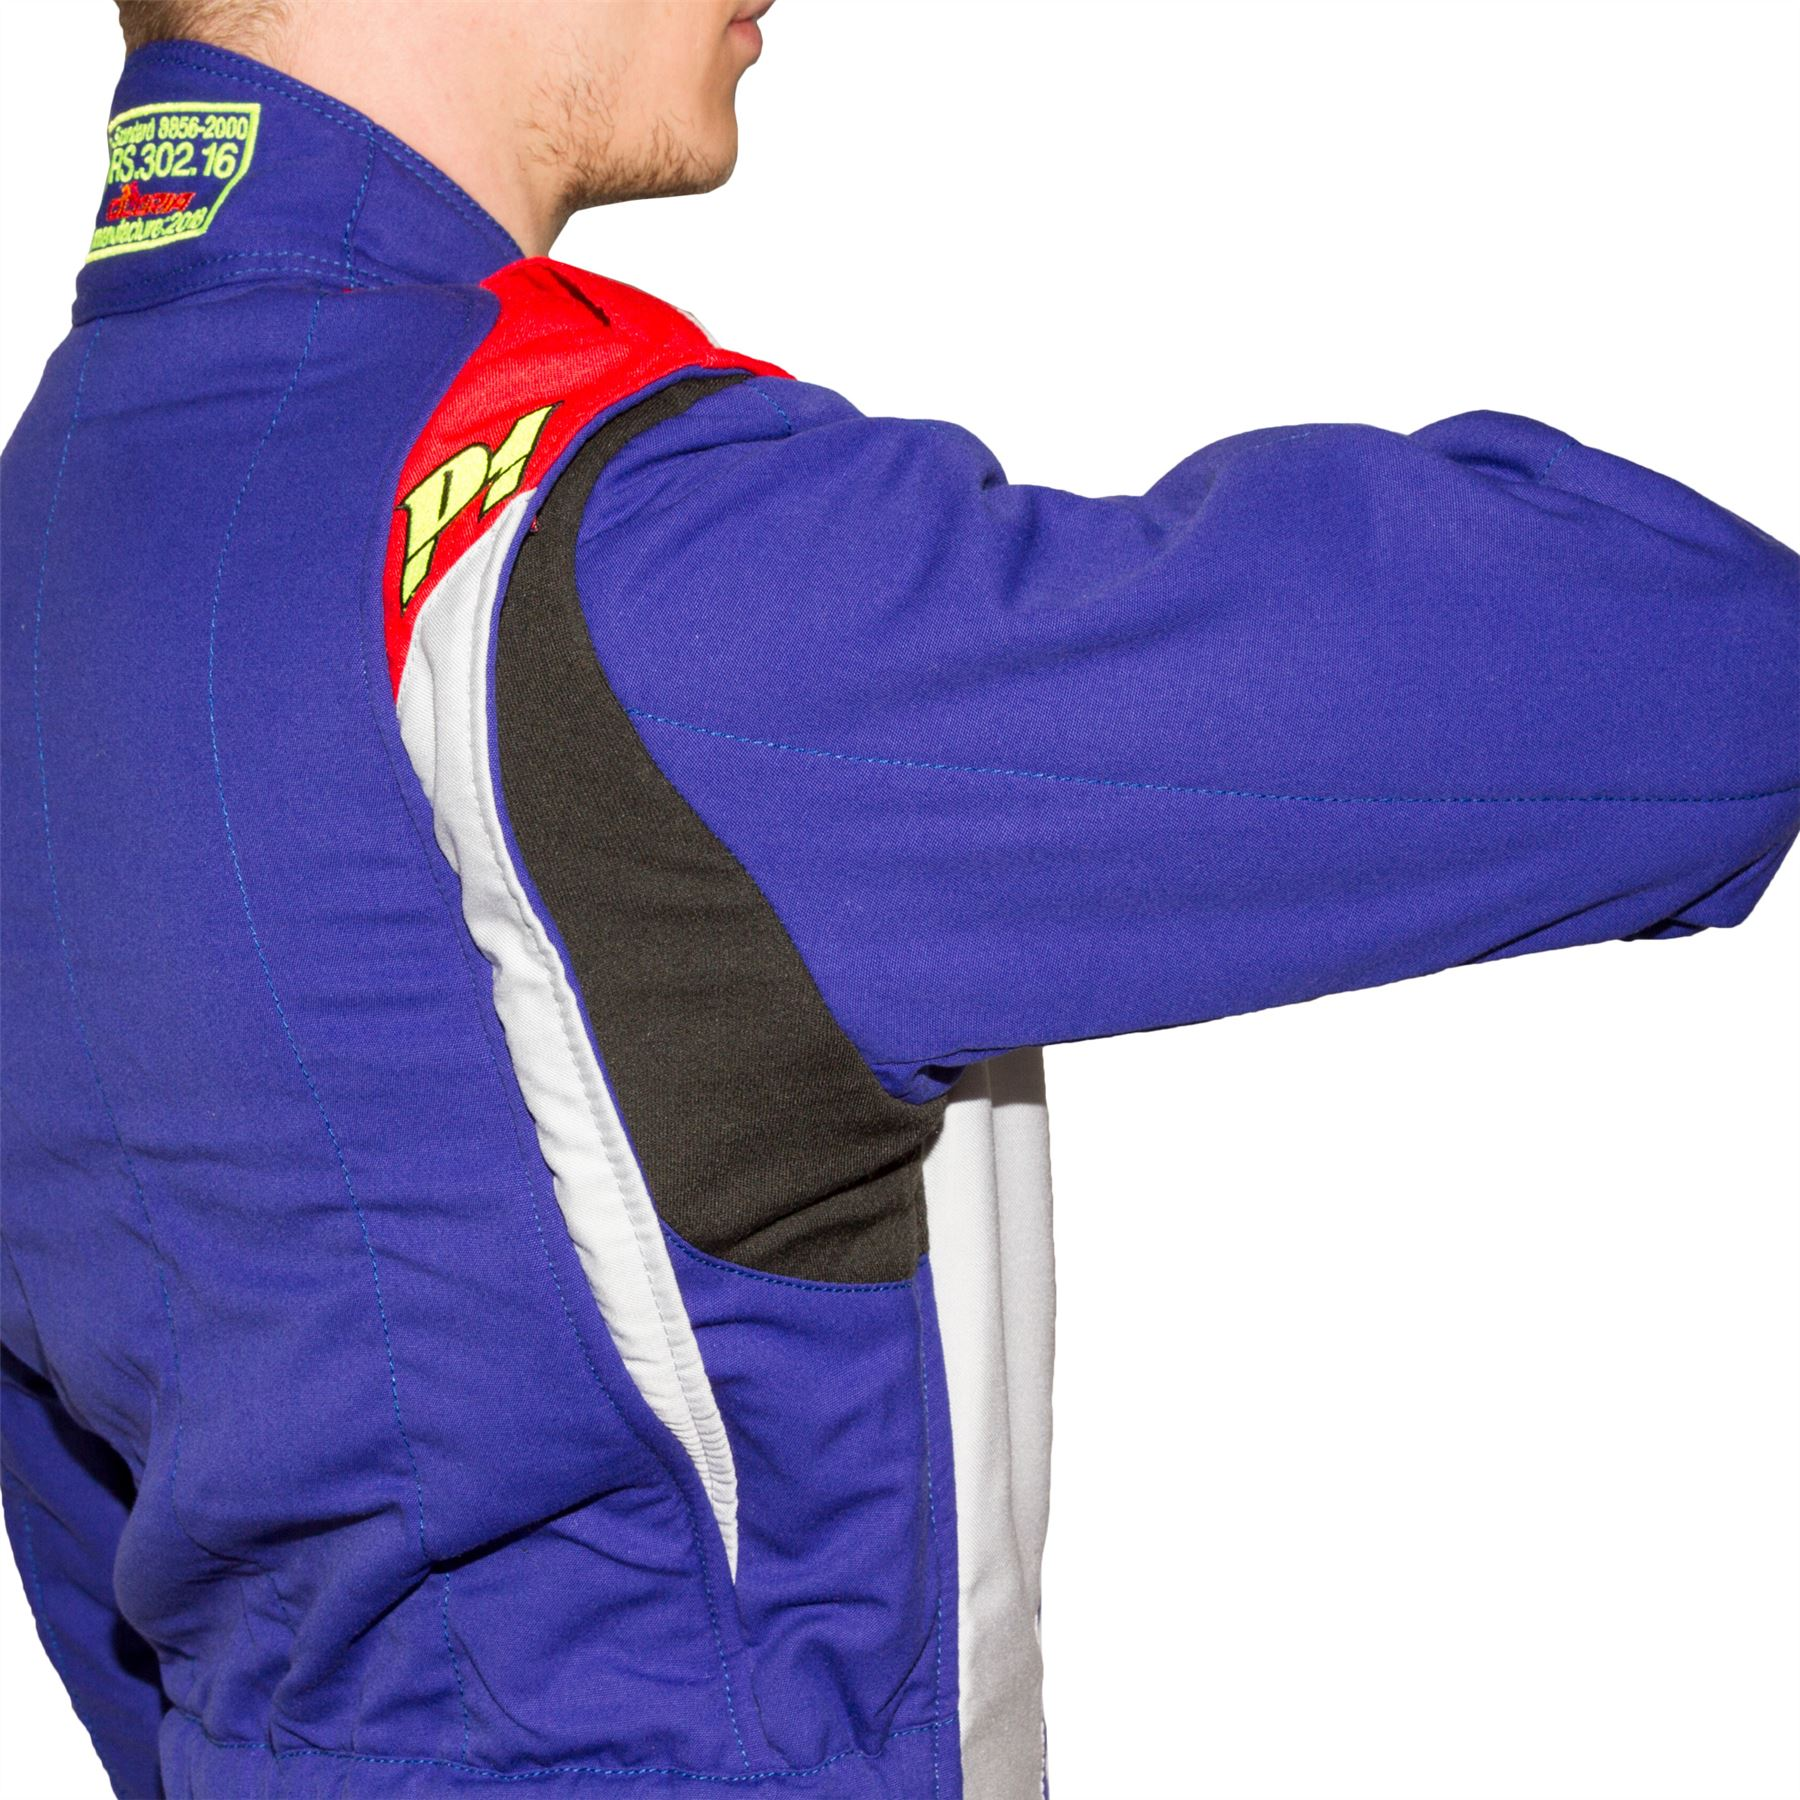 Indexbild 7 - P1-Racewear-Smart-X3-2-Layer-Race-Rally-Suit-Nomex-FIA-Approved